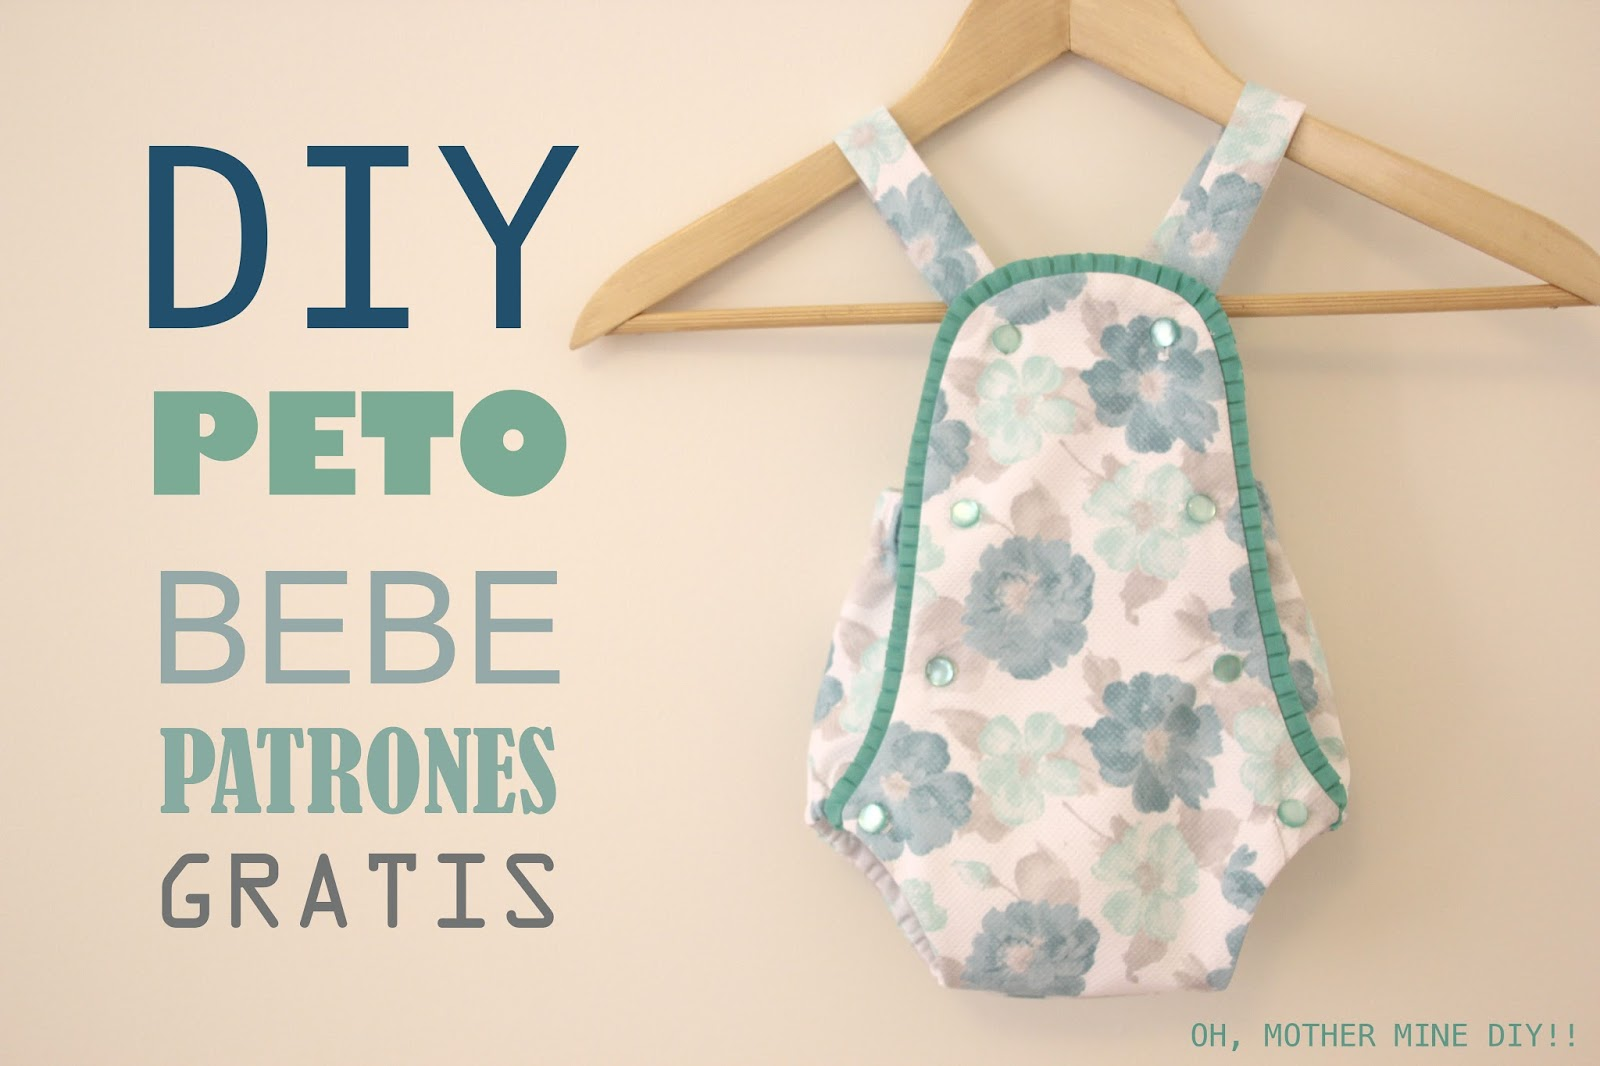 DIY Peto PELELE de bebe (patrones gratis) - Handbox Craft Lovers ...